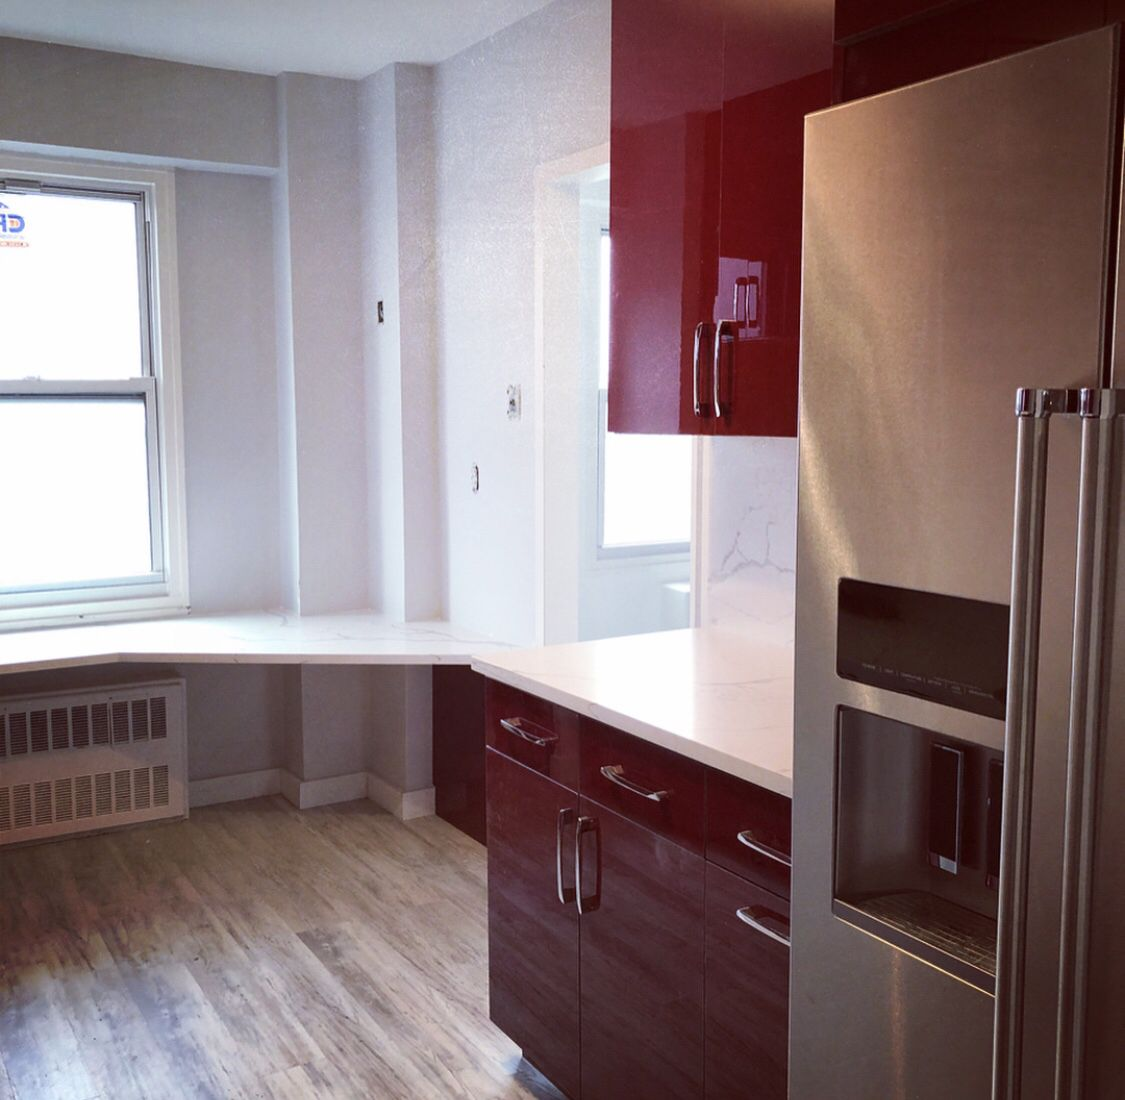 Red Cabinetry Mixed With Marble Look Quartz Kitchen And Bath Design Red Kitchen Cabinets Red Cabinets